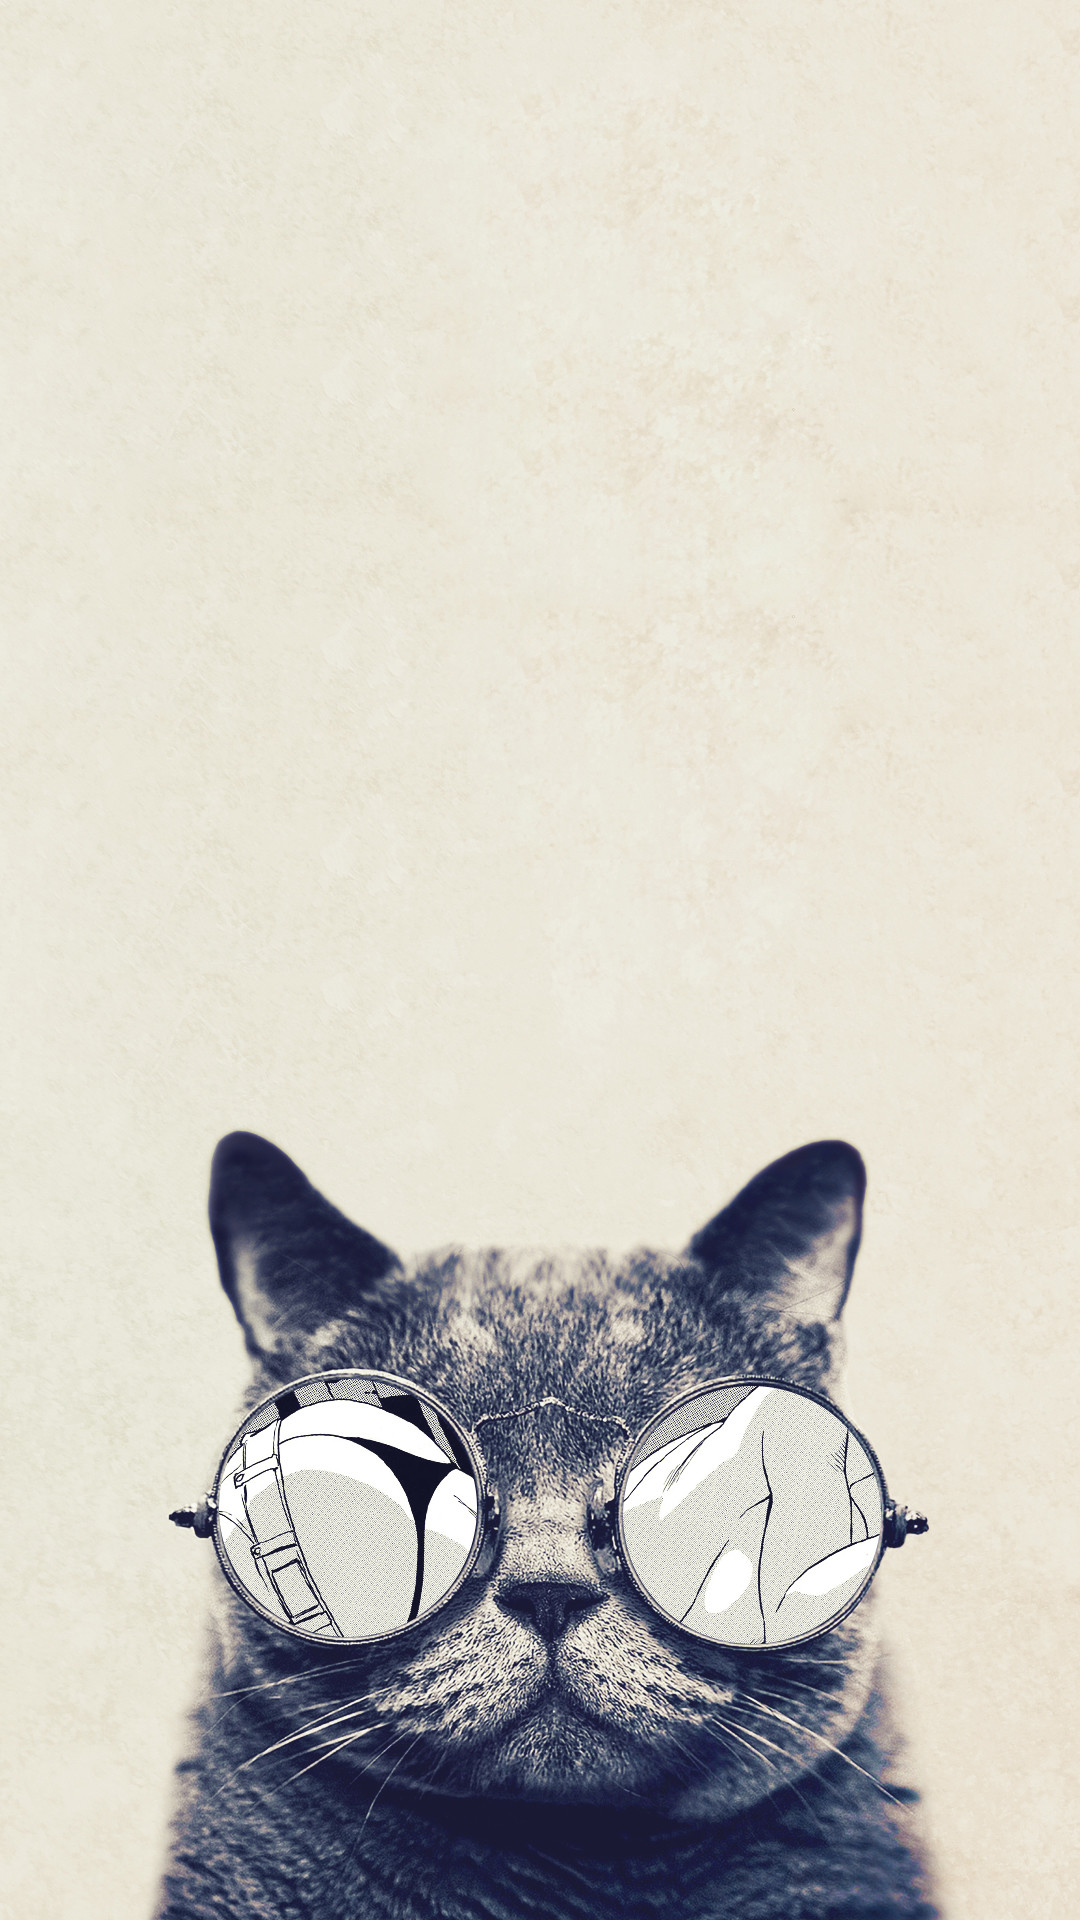 Cat glasses HTC hd wallpaper – High quality htc one wallpapers and abstract  backgrounds designed by the best and creative artists in the world.